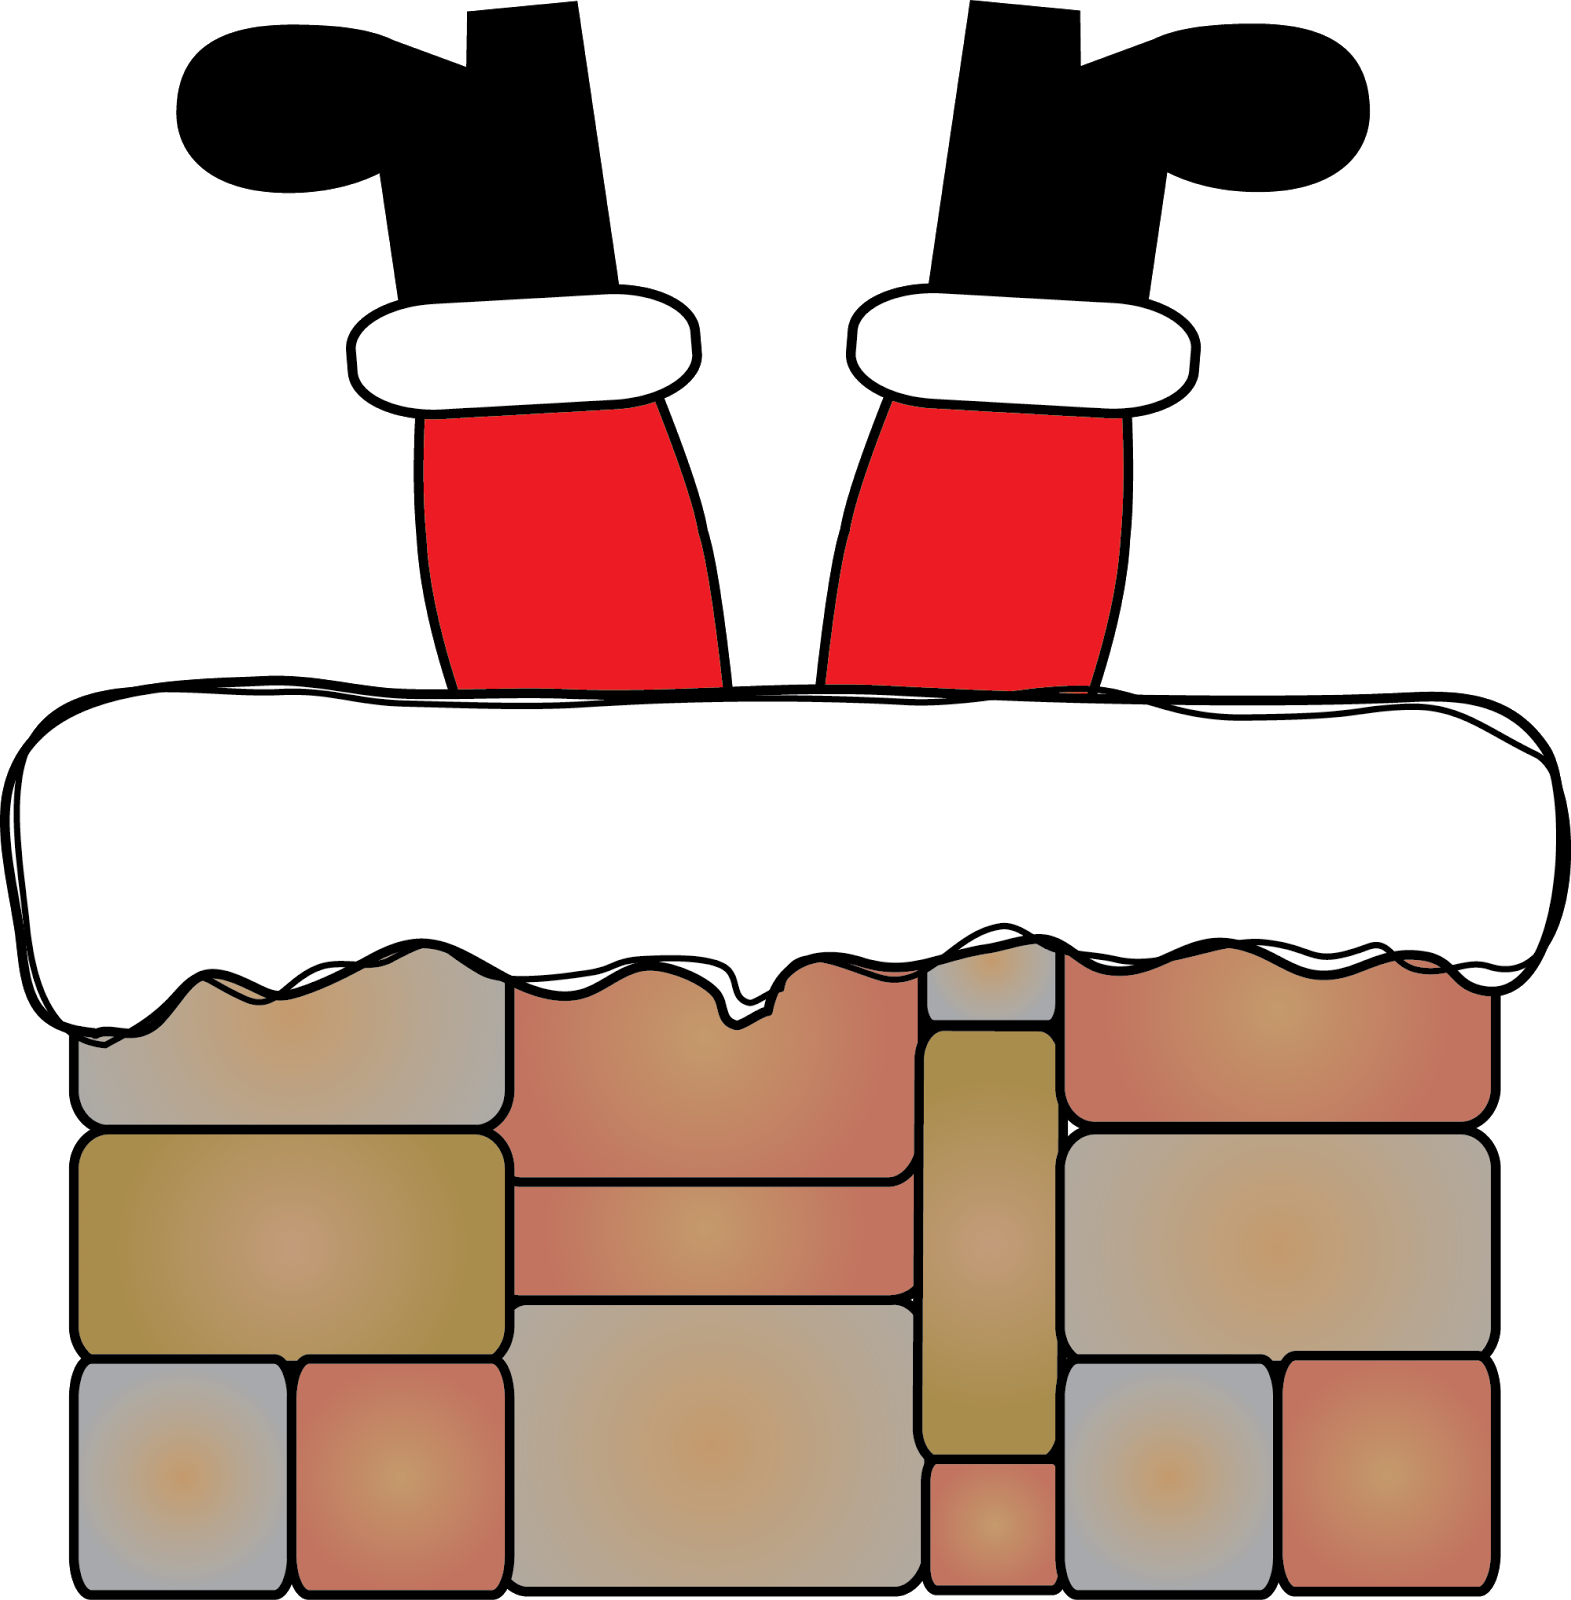 Christmas chimney clipart jpg freeuse download Don't Get Stuck! Freebies and More! - Mrs. Jump's Class jpg freeuse download